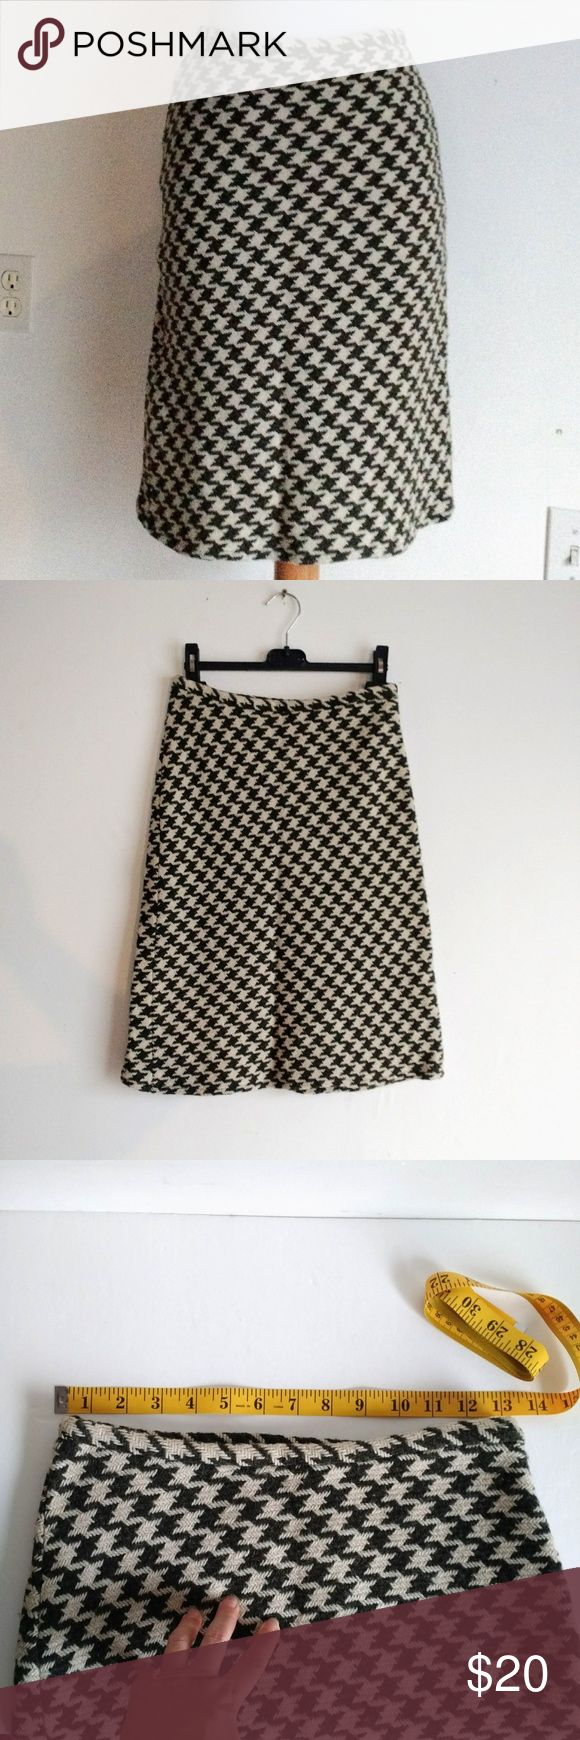 NAF NAF Olive Cream Houndstooth Wool skirt XS Naf Naf Paris fully lined A line midi skirt. Color is olive green and cream / off white / butter . Bought in Europe.. Readily shrunk :-) fits XS, sizes 2 and 0 (here shown on size 2 mannequin).  See measurements. NAF NAF Skirts Midi